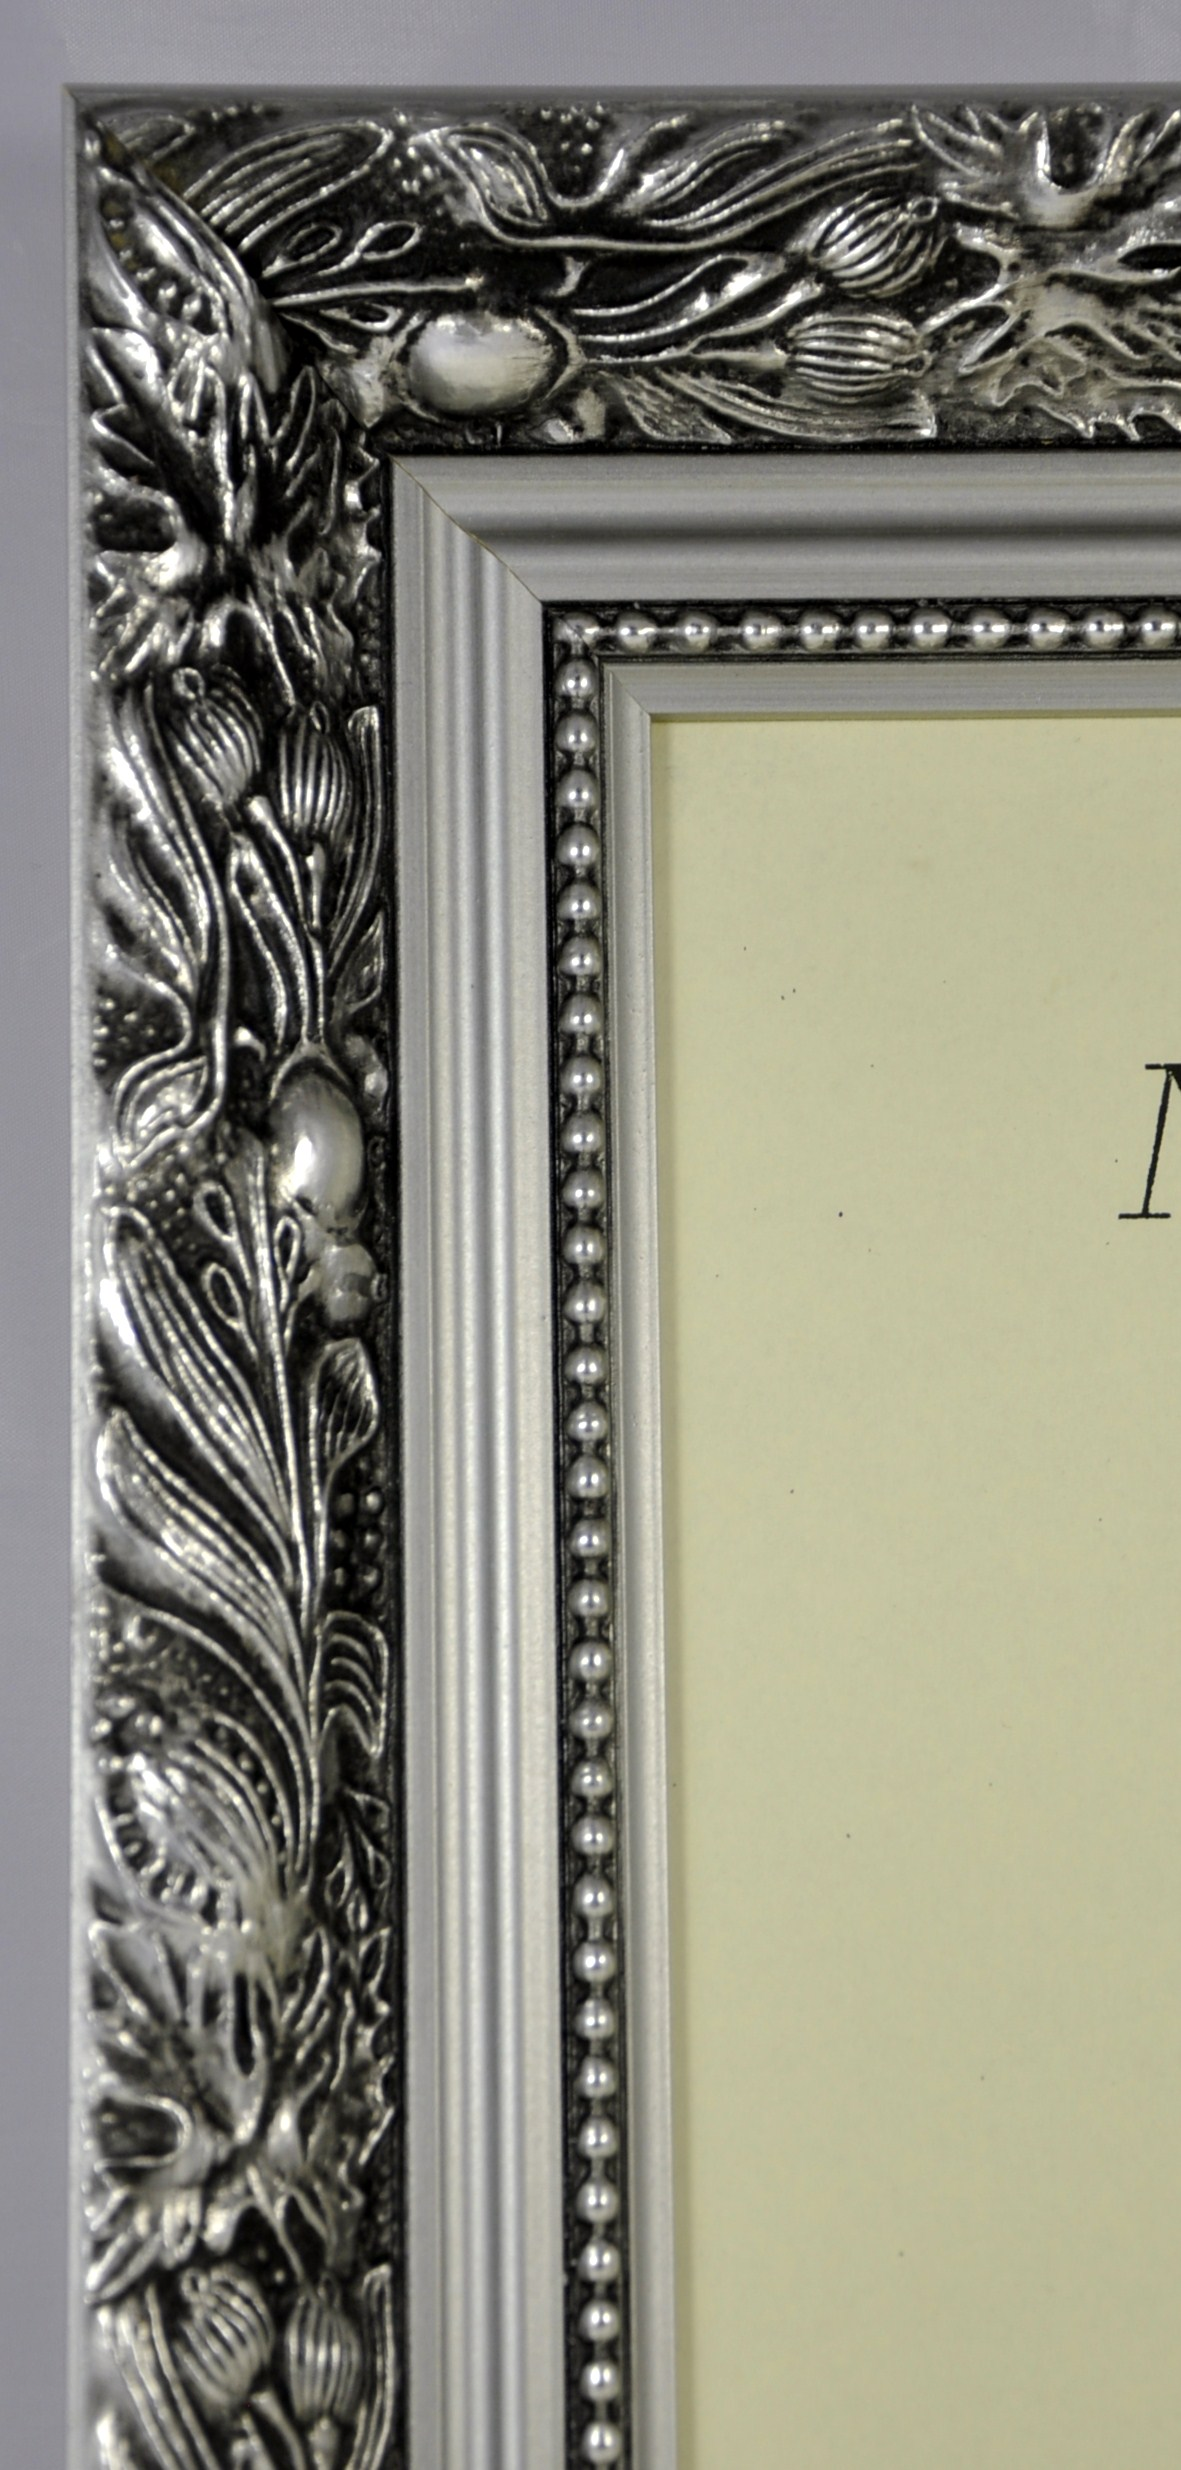 f5 quality wood frame in silver dahlia trade picture frames. Black Bedroom Furniture Sets. Home Design Ideas